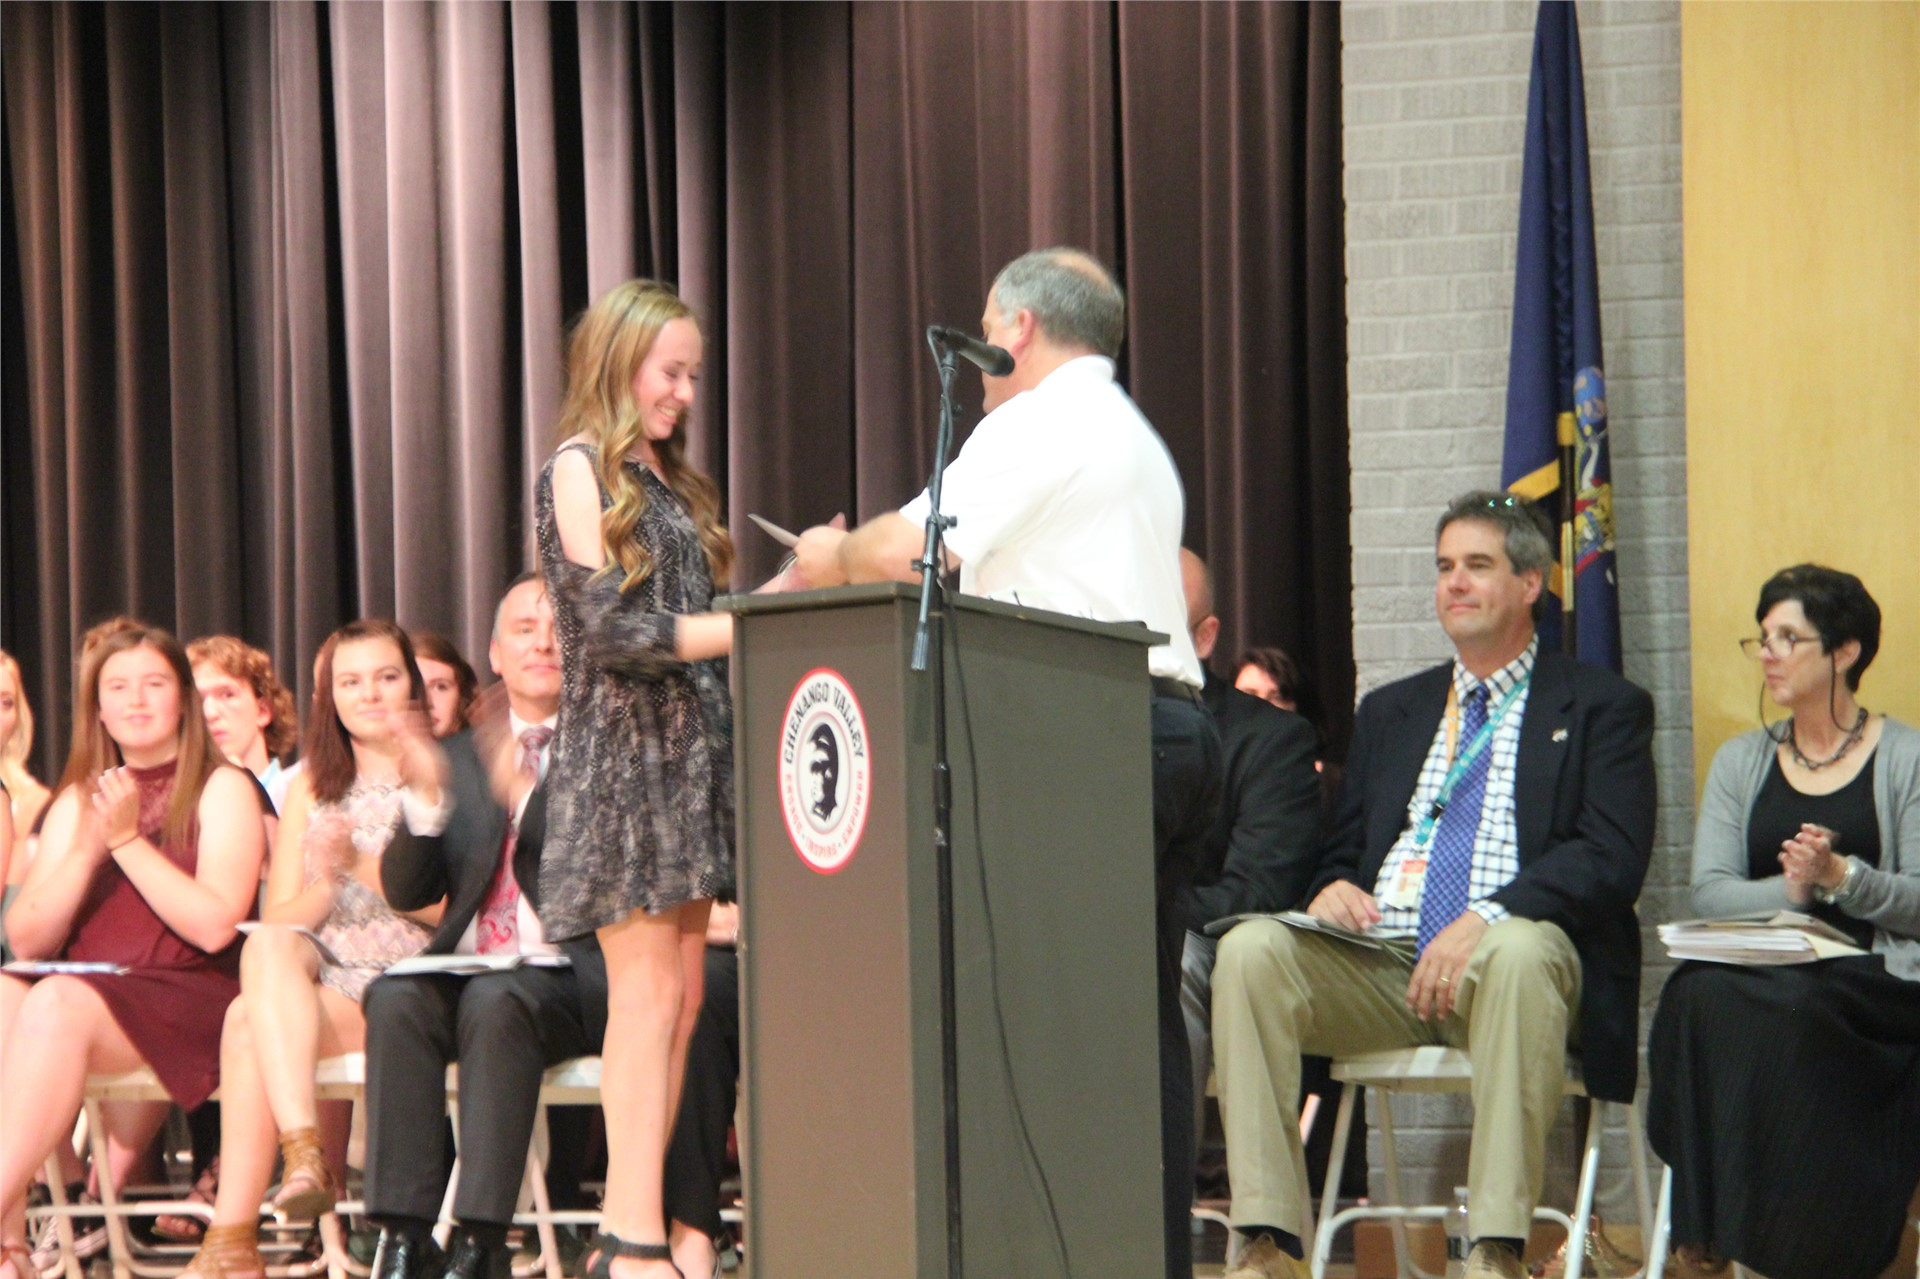 female student receives award from man